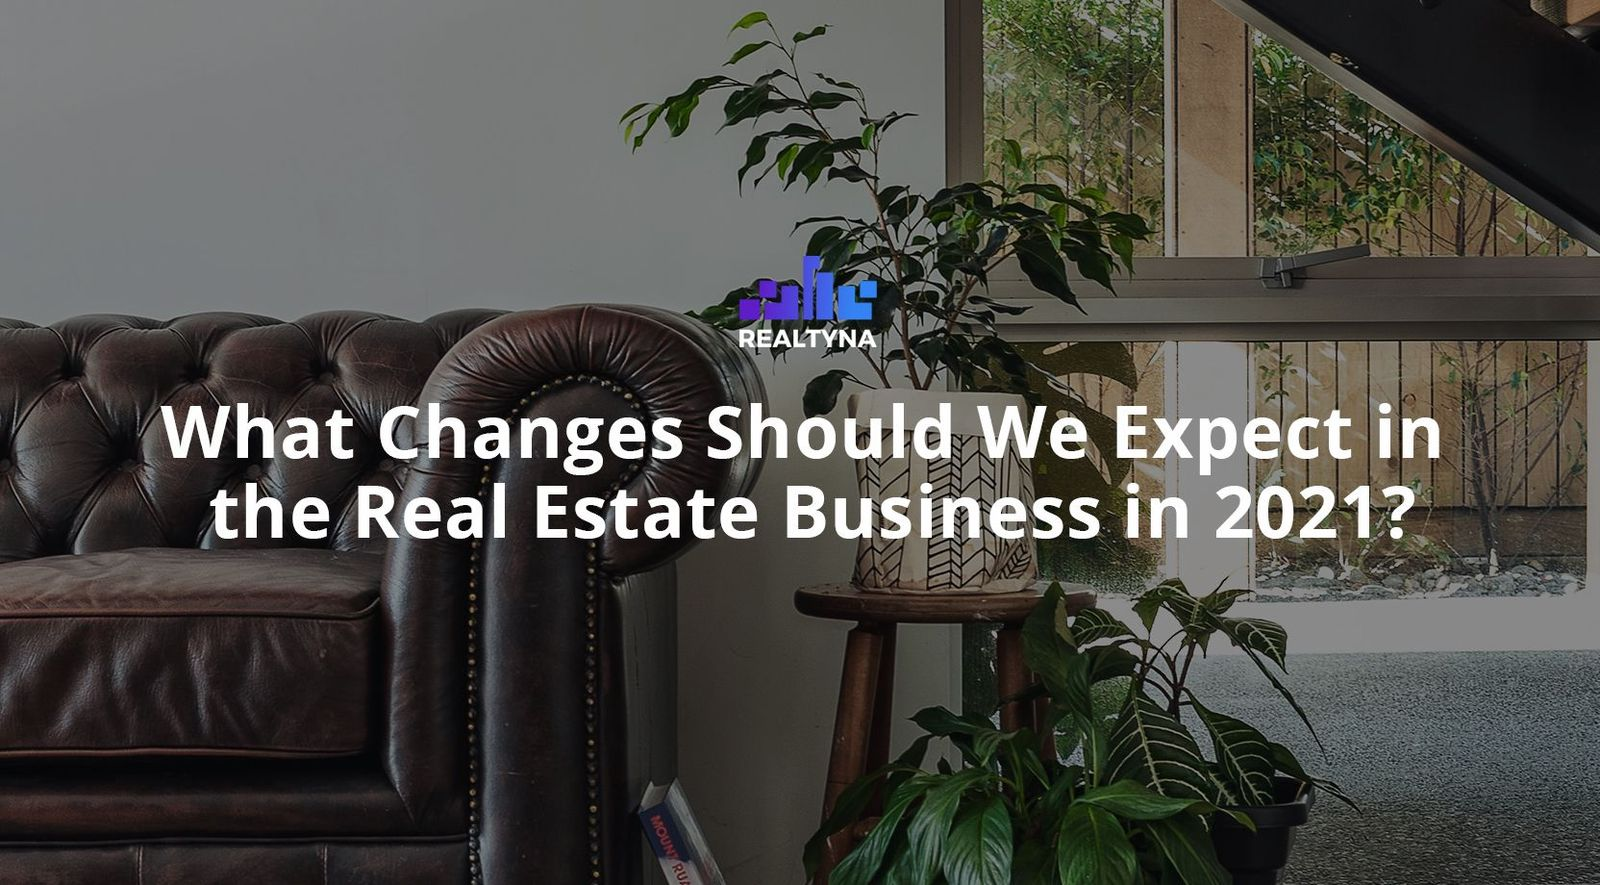 What Changes Should We Expect in the Real Estate Business in 2021?